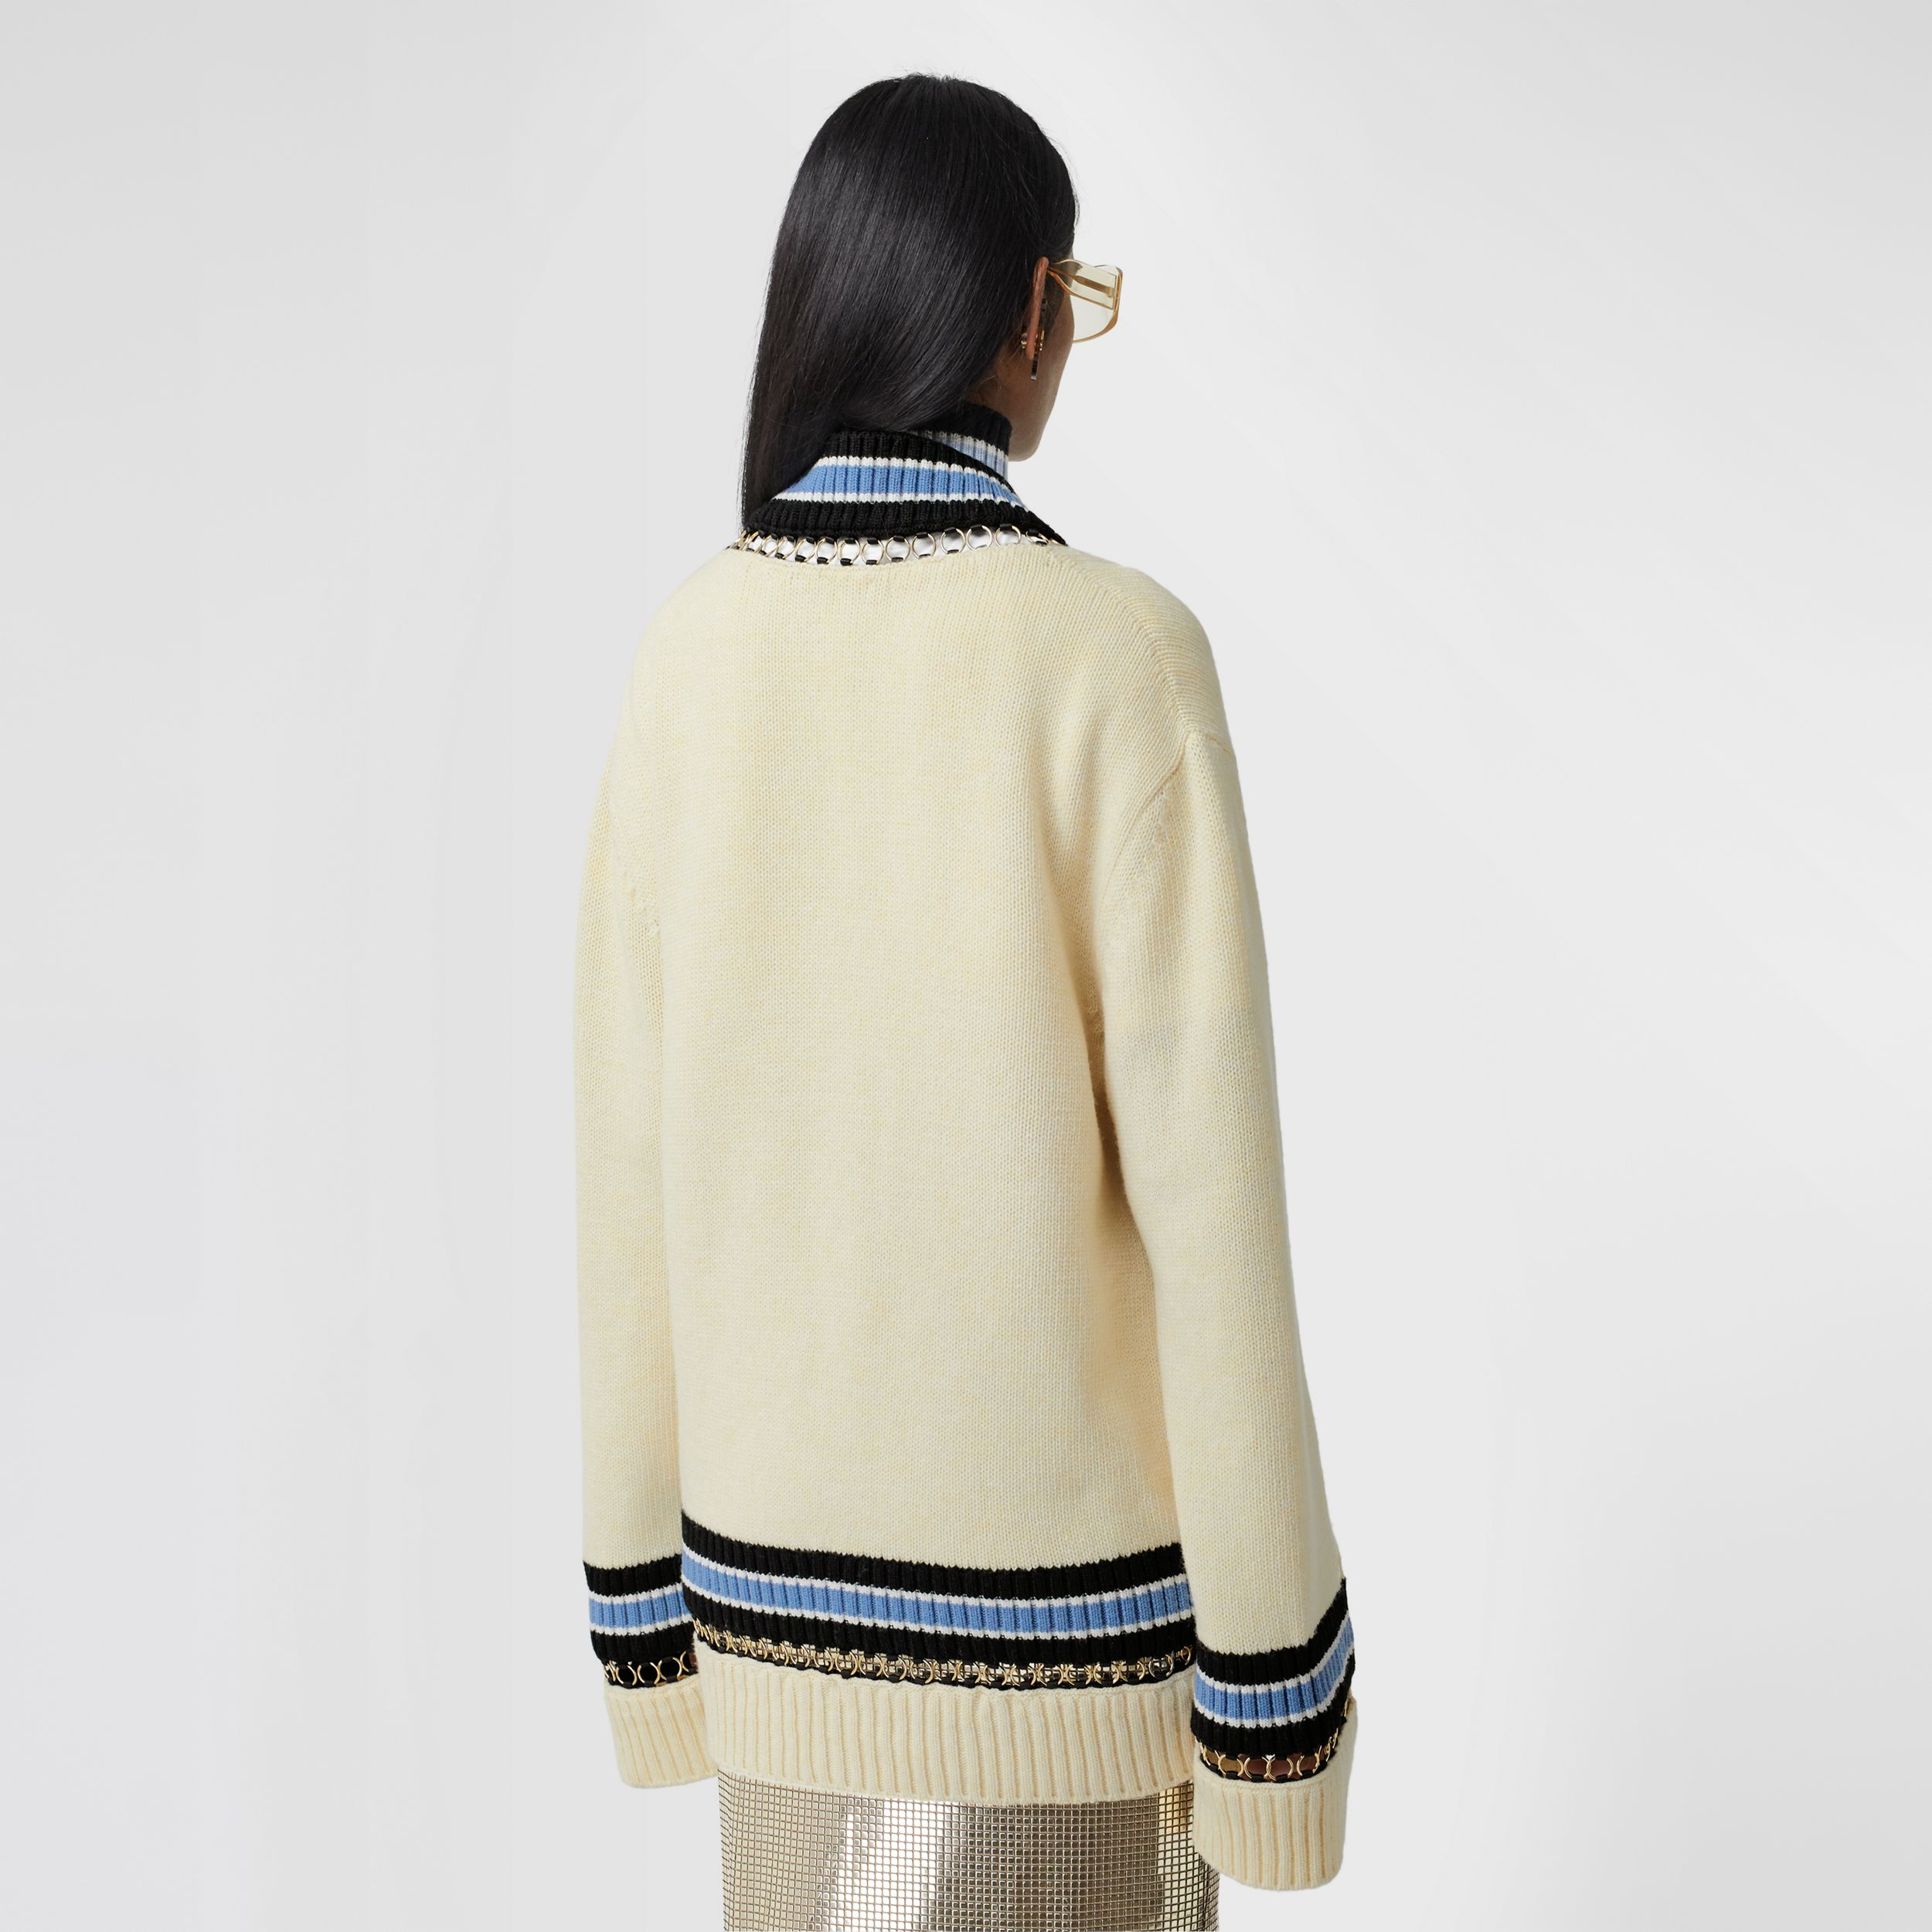 Ring-pierced Wool Oversized Cricket Sweater in White - Women | Burberry Hong Kong S.A.R. - 3